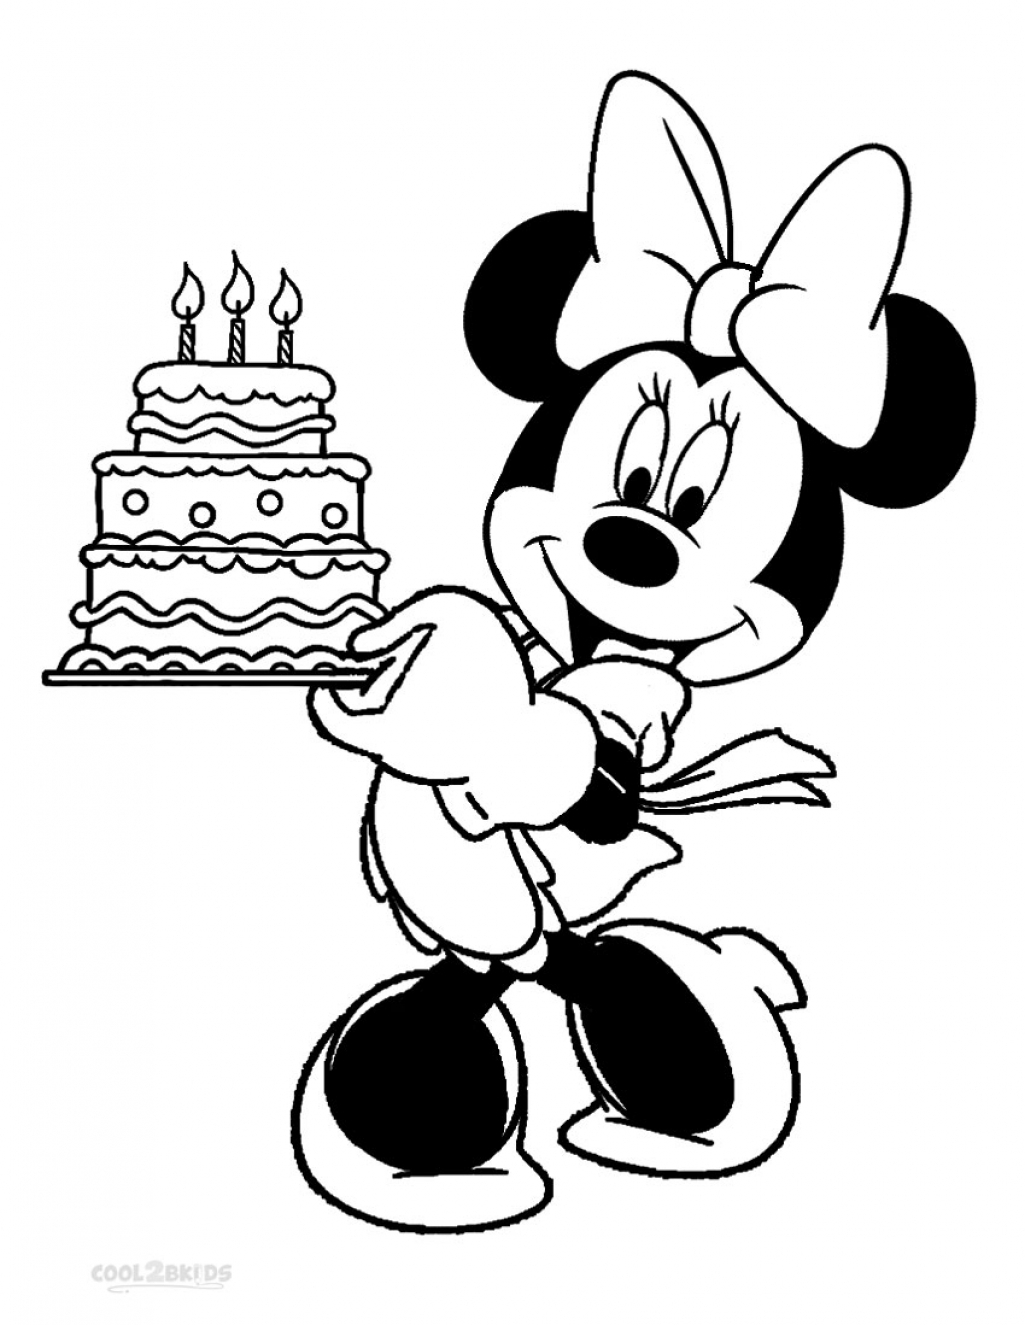 mickey mouse pictures to colour for free mickey mouse coloring pages coloring pages to print for pictures colour to free mouse mickey